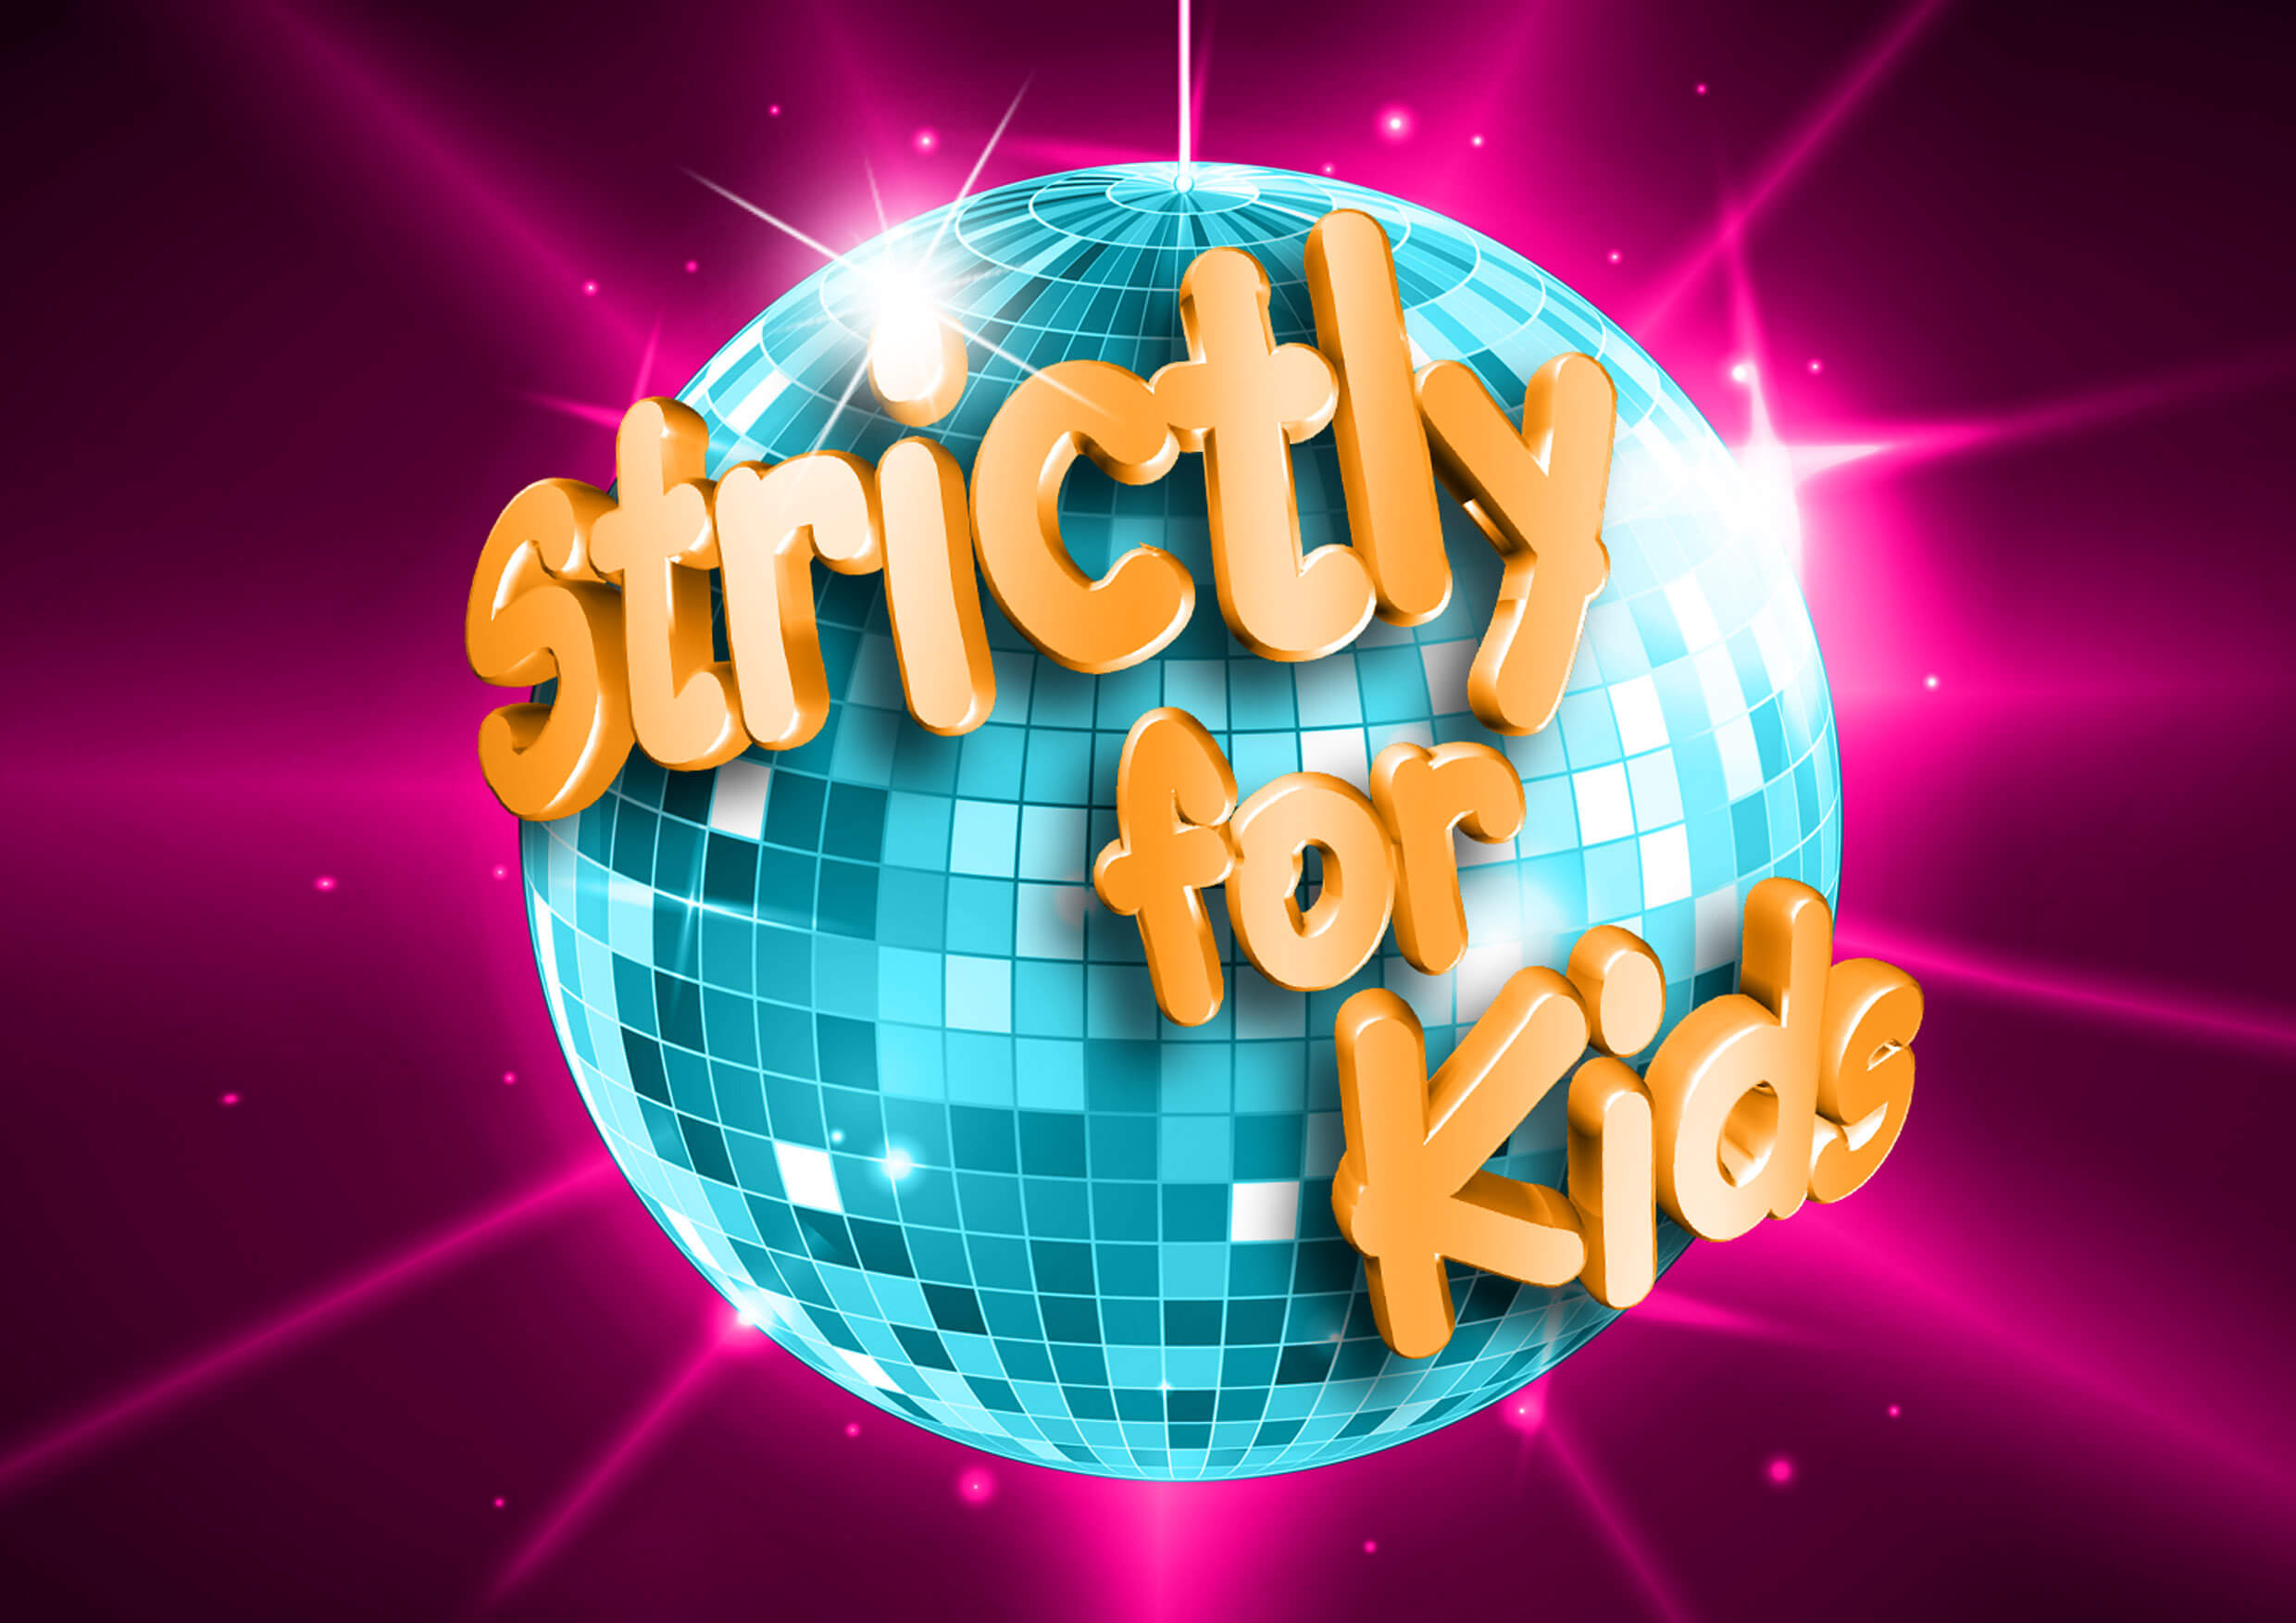 strictly-for-kids